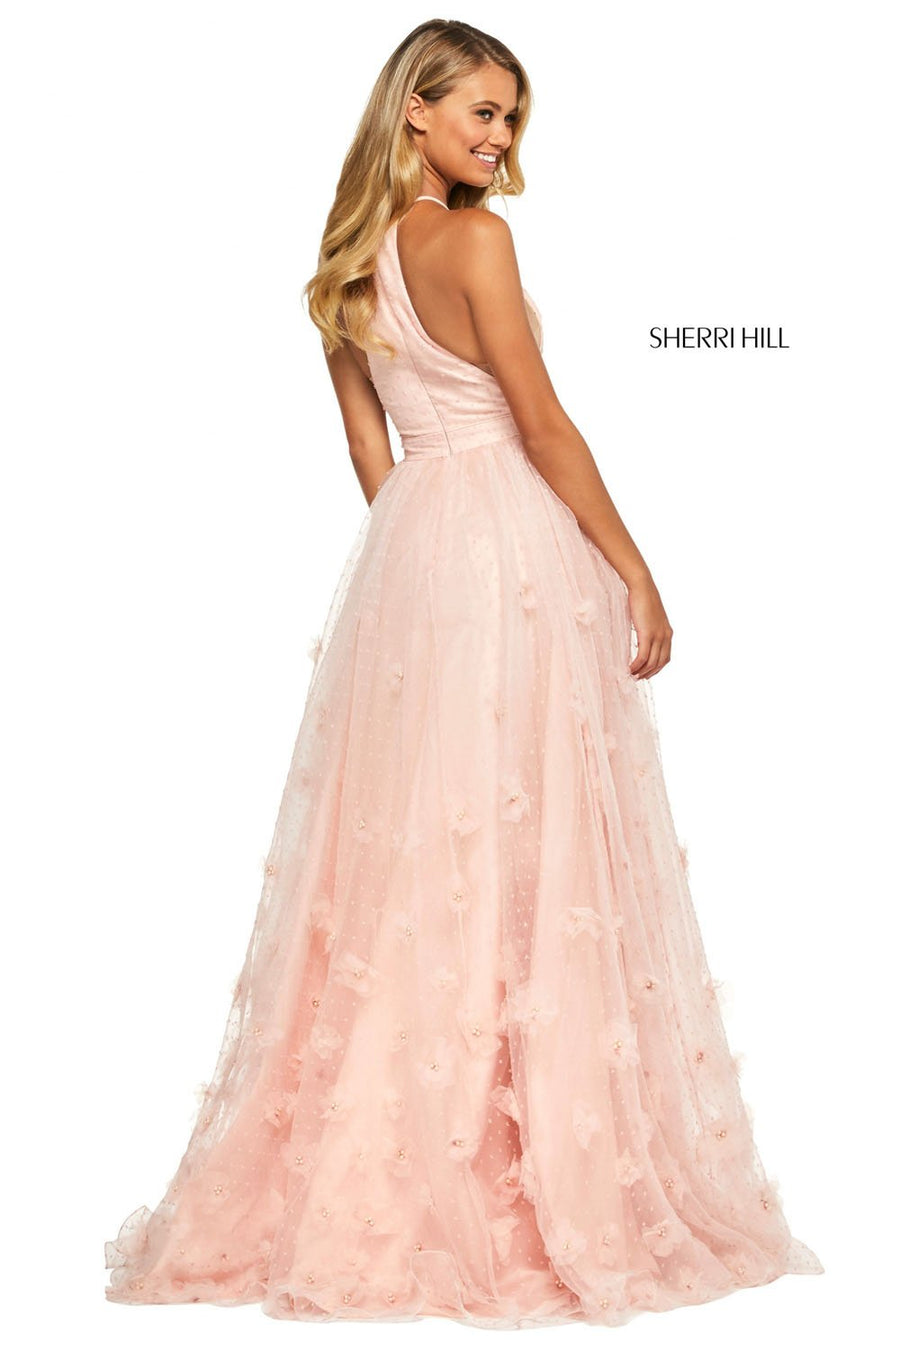 Sherri Hill 53595 prom dress images.  Sherri Hill 53595 is available in these colors: Blush, Ivory, Lilac, Navy, Yellow, Aqua, Coral, Candy Pink.